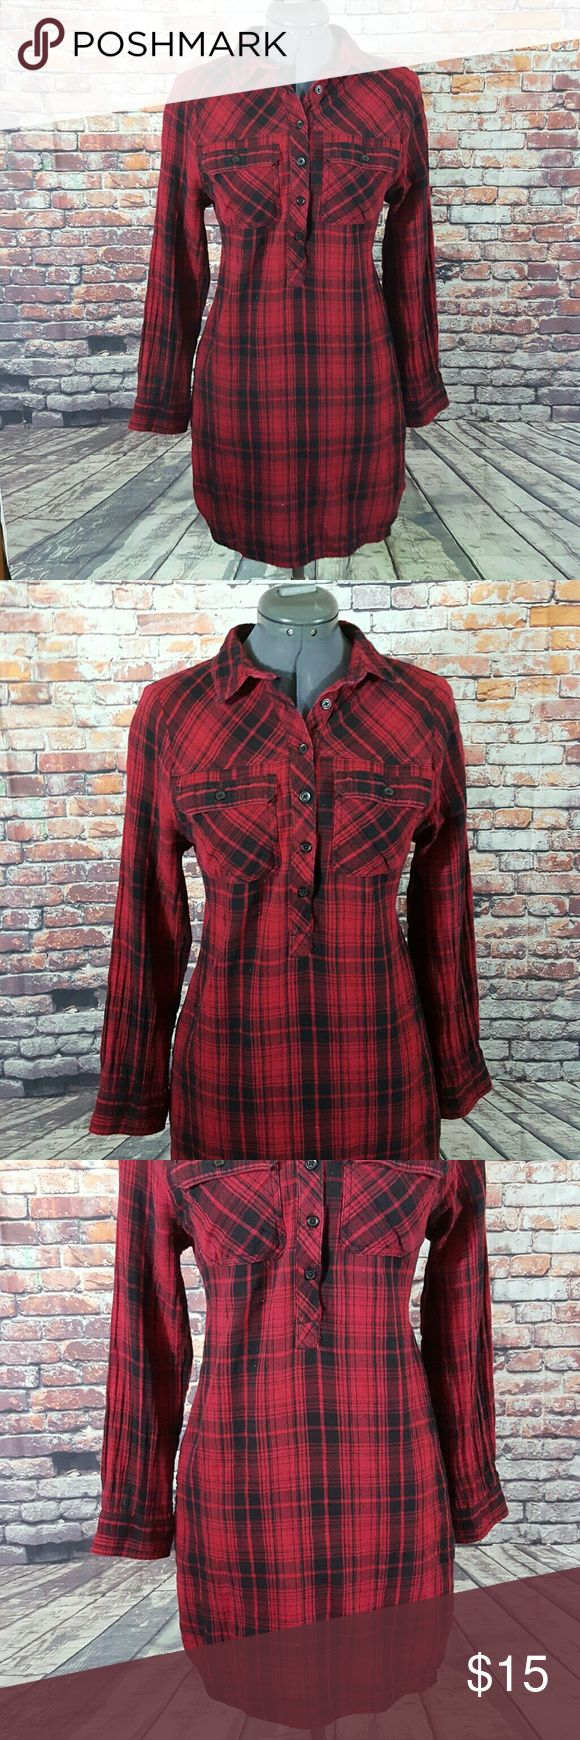 """Flannel Shirt Dress Beach Lunch Lounge Womens Beach Lunch Lounge Size Small Red/Black Flannel Long Sleeve Shirt Dress  Gently used with no flaws, see photos   Measurements: 18.5"""" armpit to armpit  34"""" in length   RT56 Beach Lunch Lounge  Dresses Midi"""